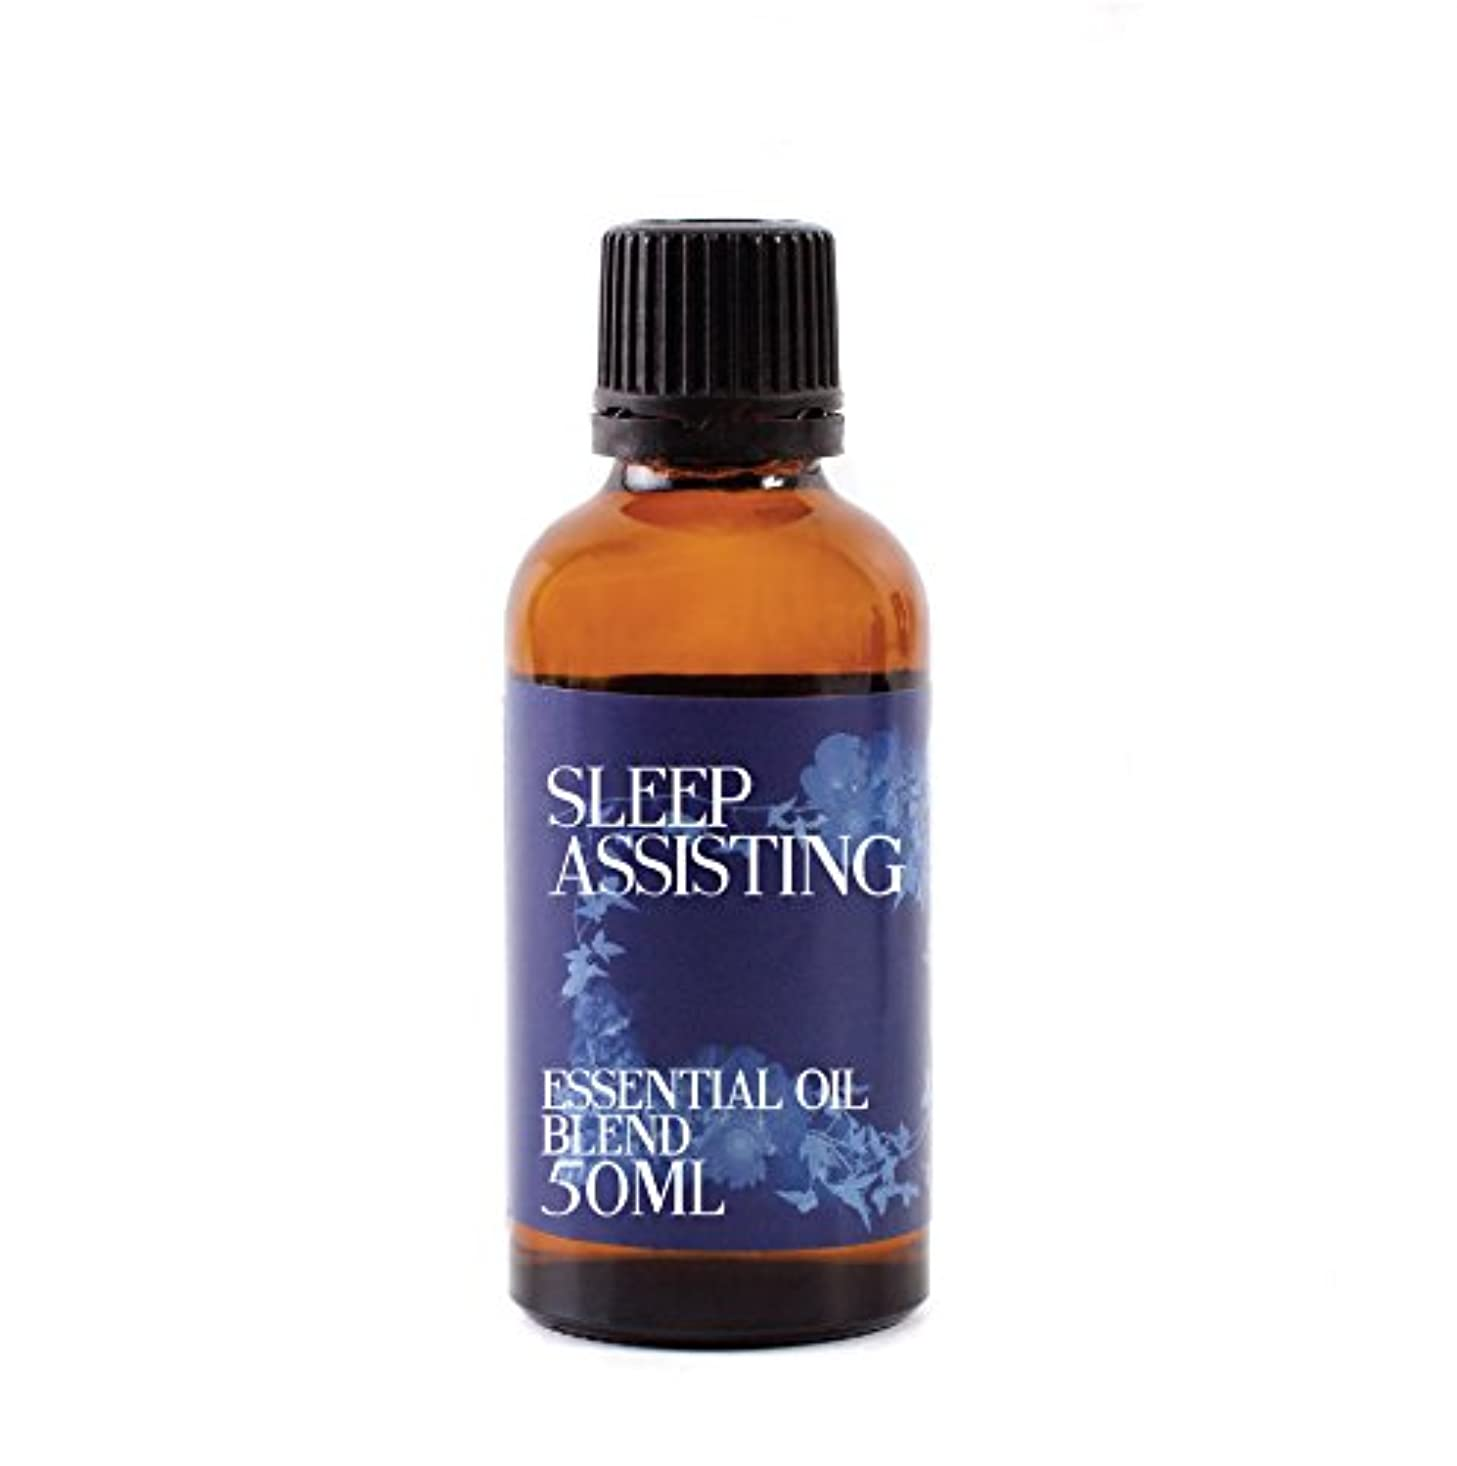 雑品硬さ甘いMystix London | Sleep Assisting Essential Oil Blend - 50ml - 100% Pure